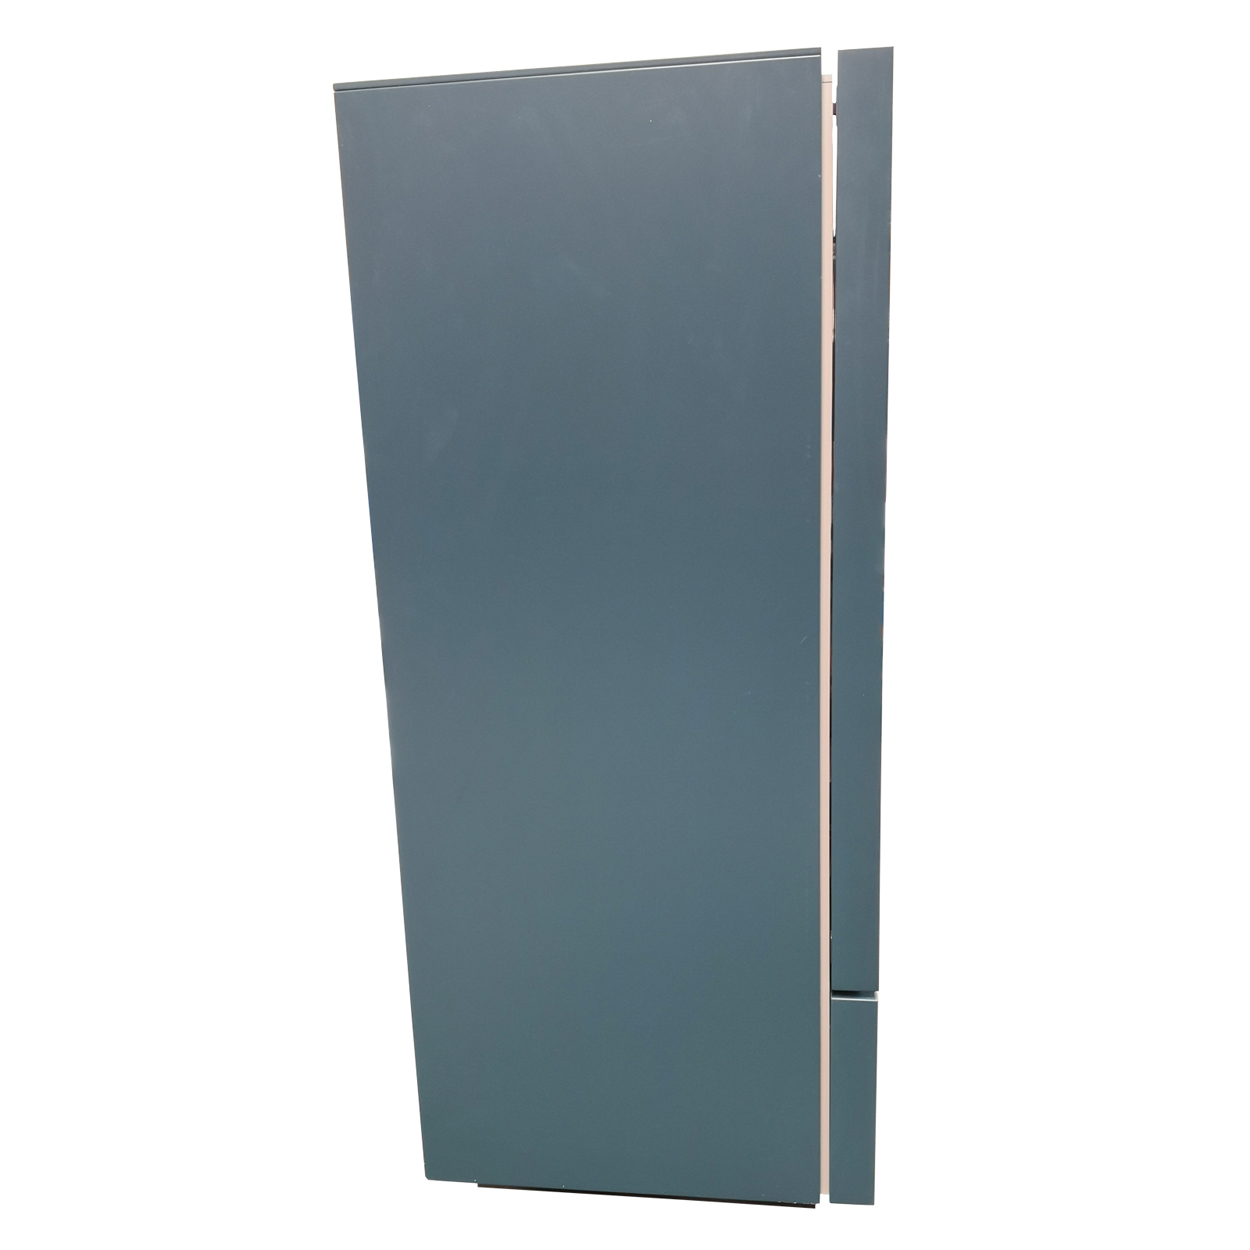 Two Design Lovers teal storage cabinet side view